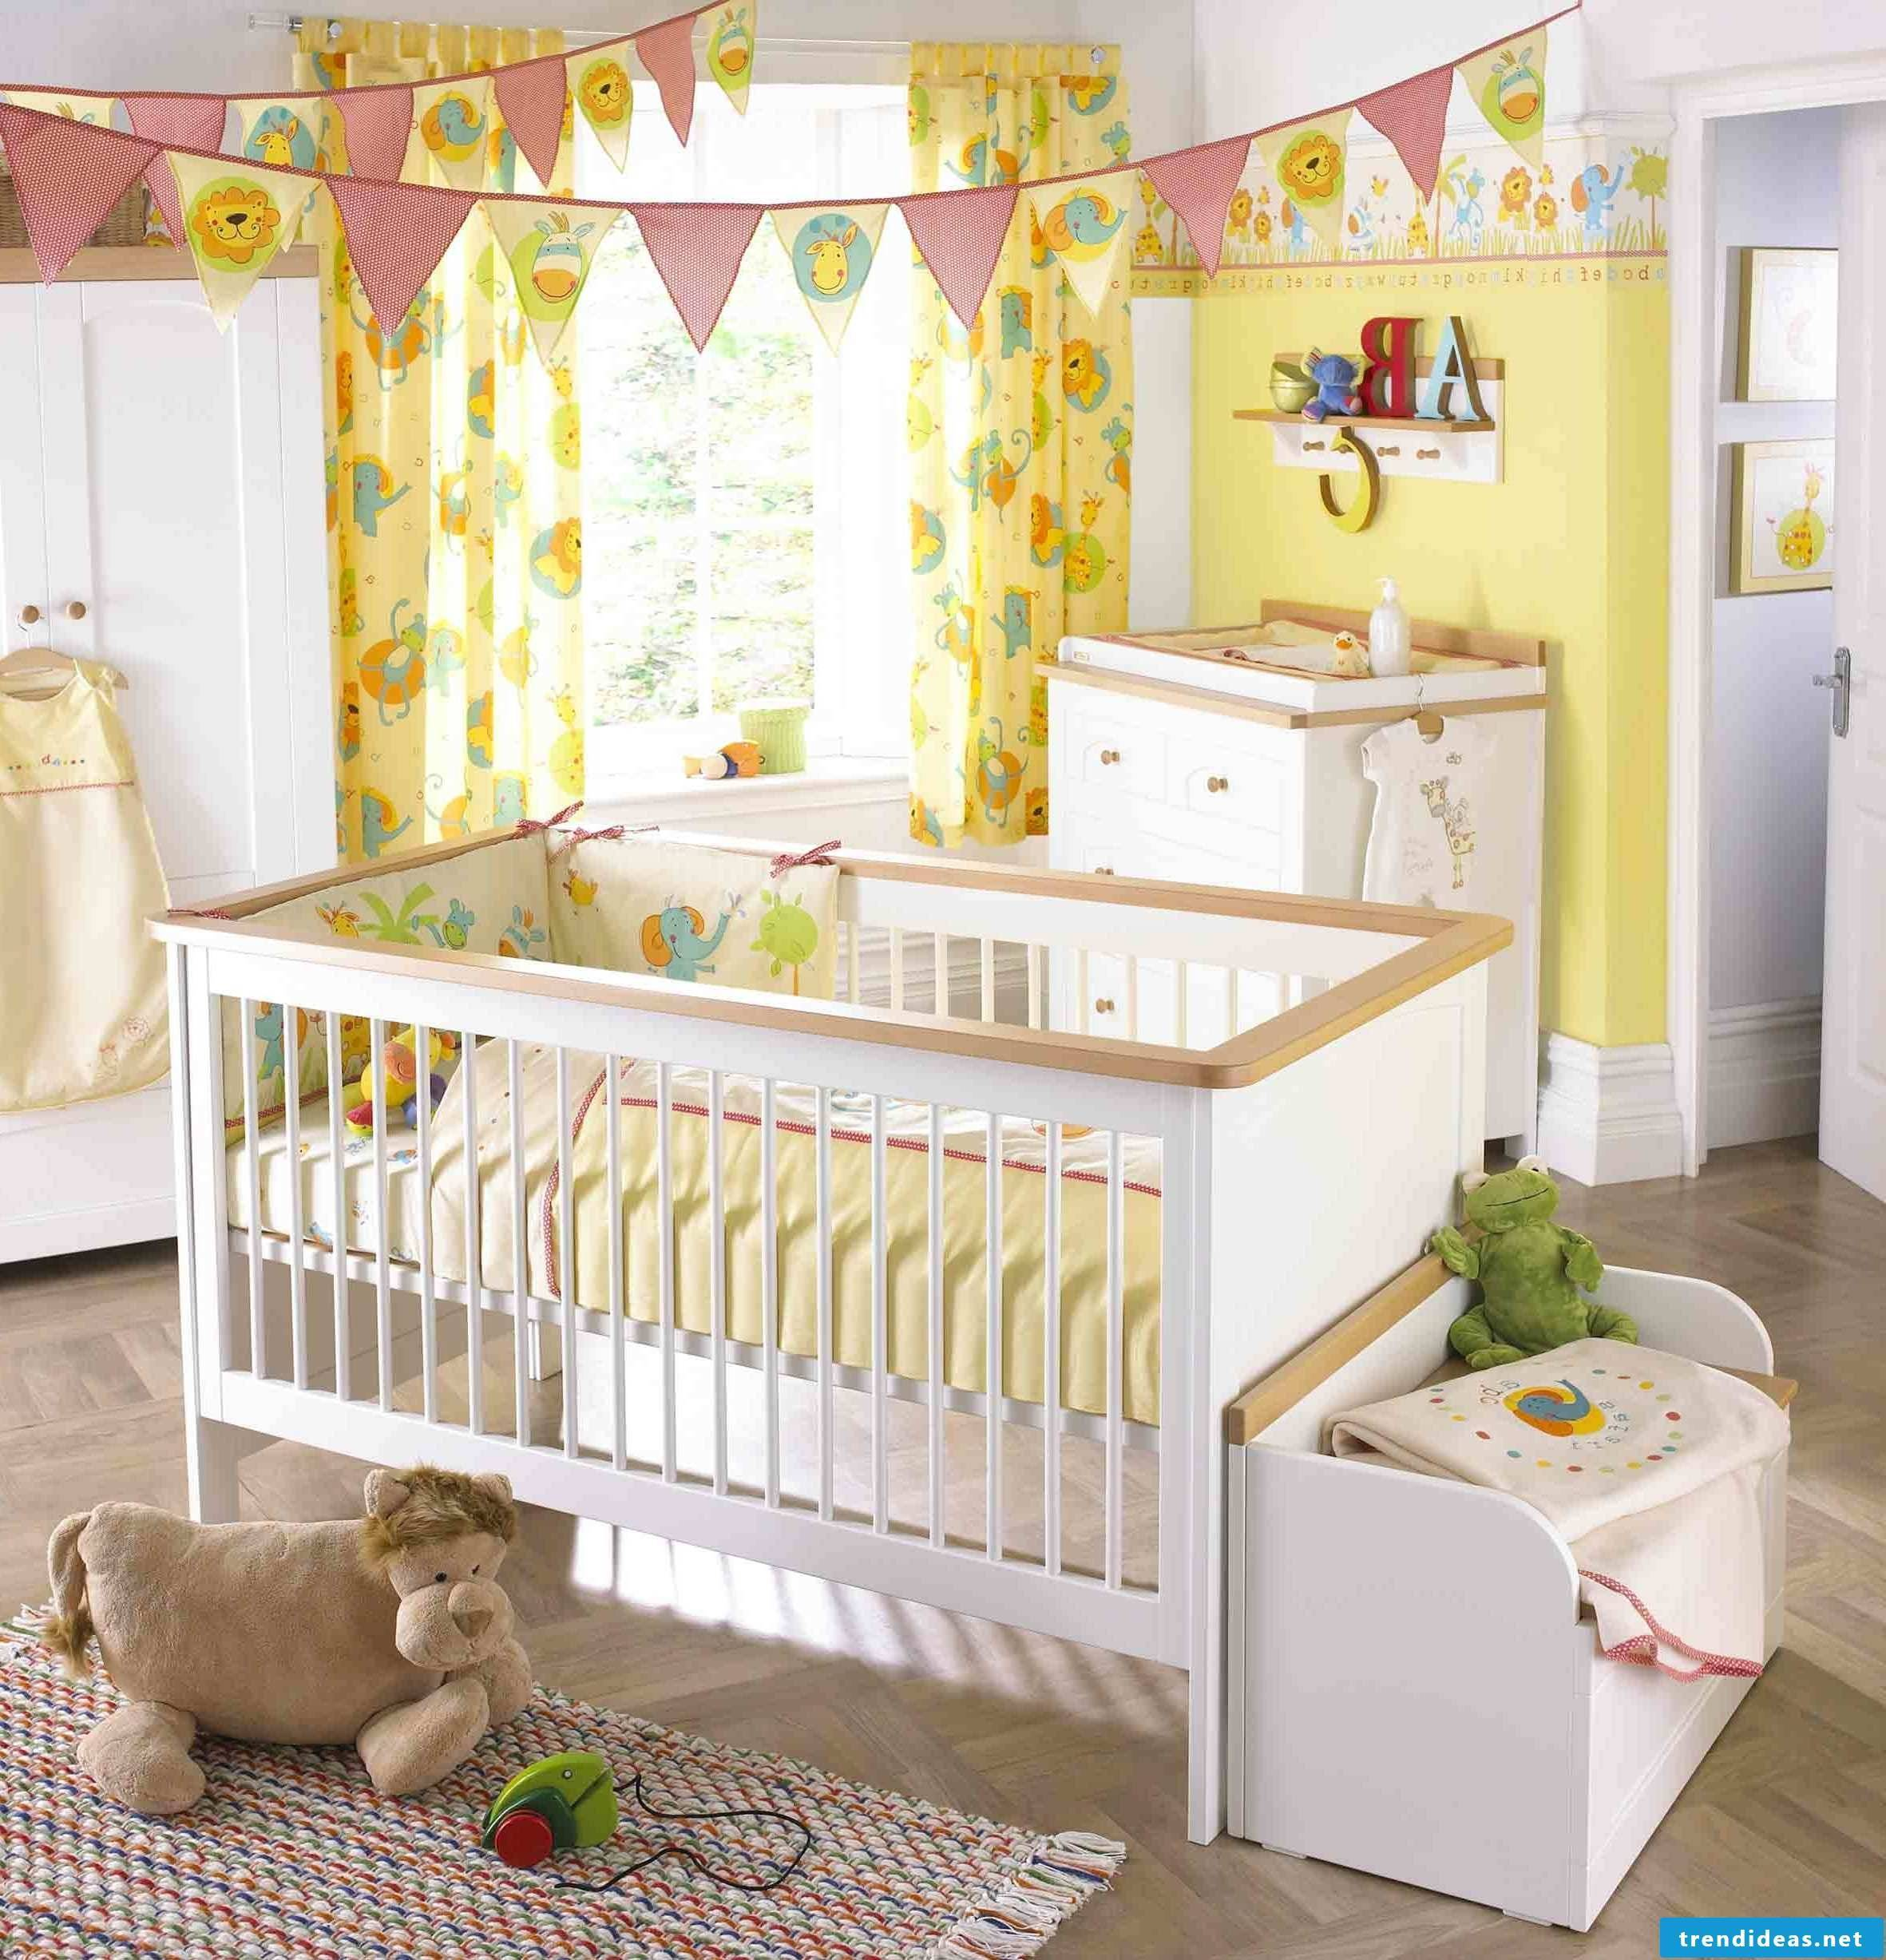 Baby nursery in soft colors